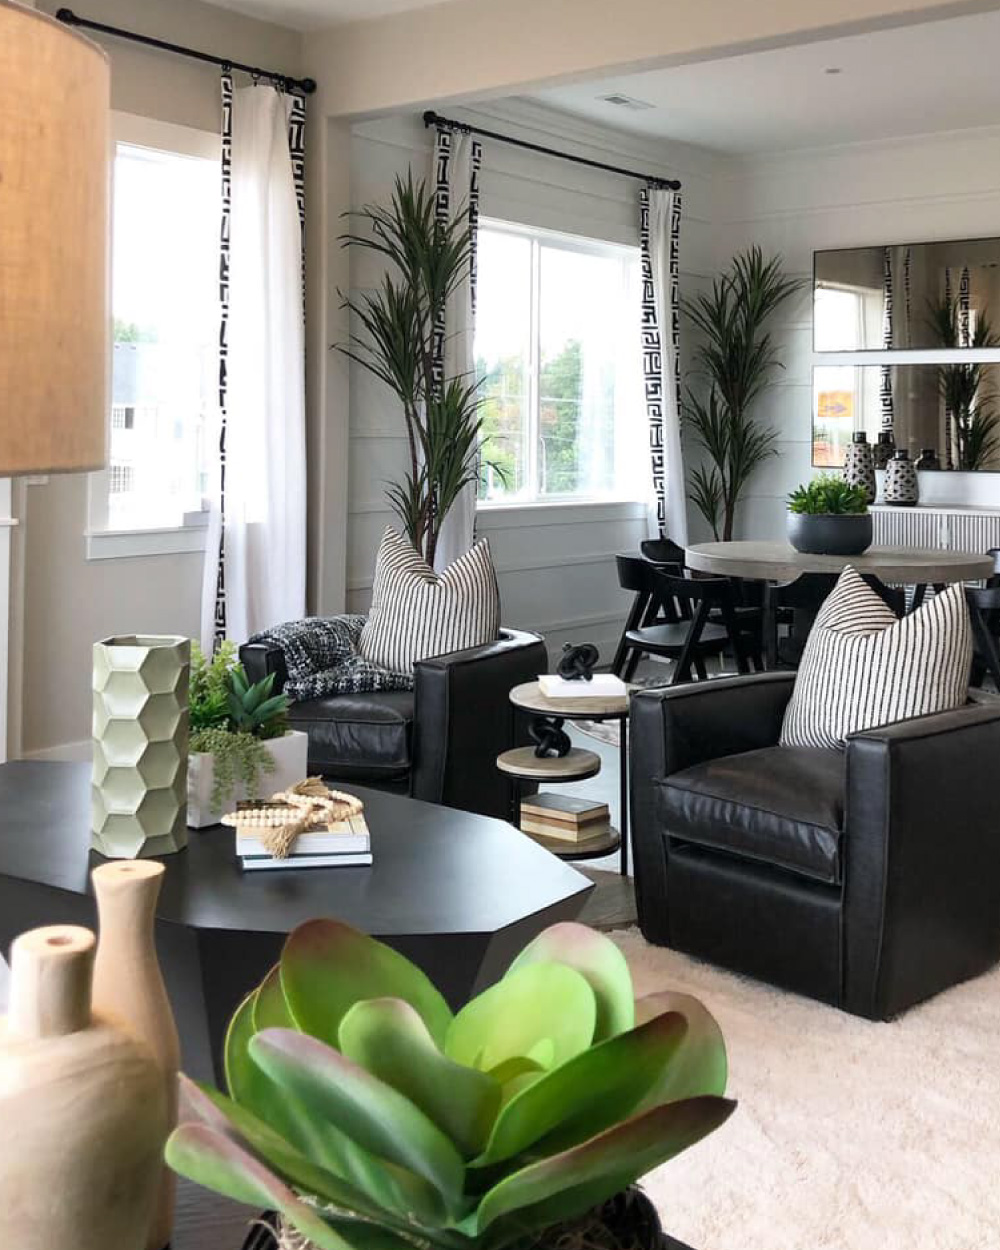 Family room with a variety of plants